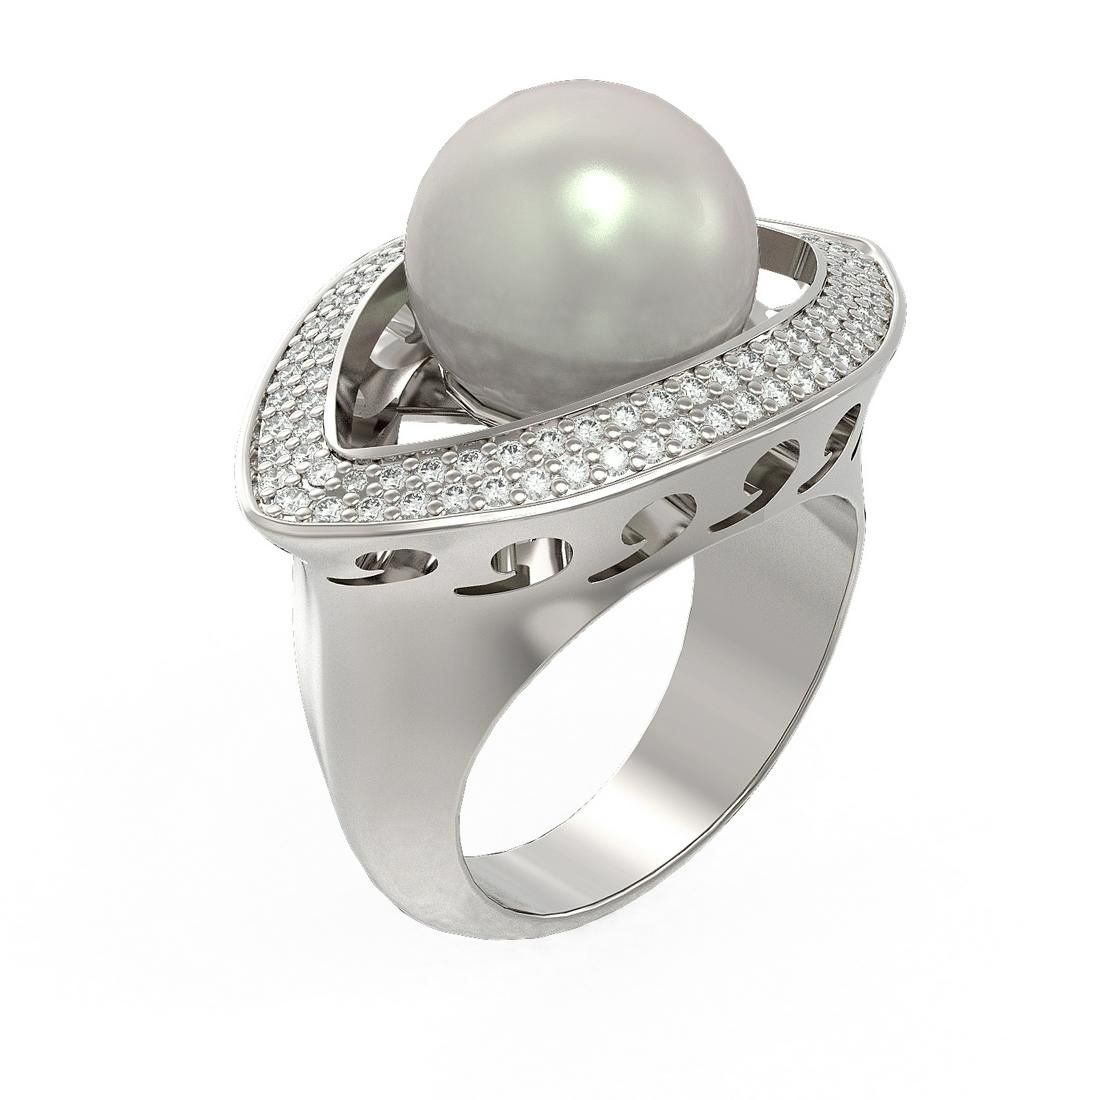 1 ctw Diamond & Pearl Ring 18K White Gold - REF-169K3Y